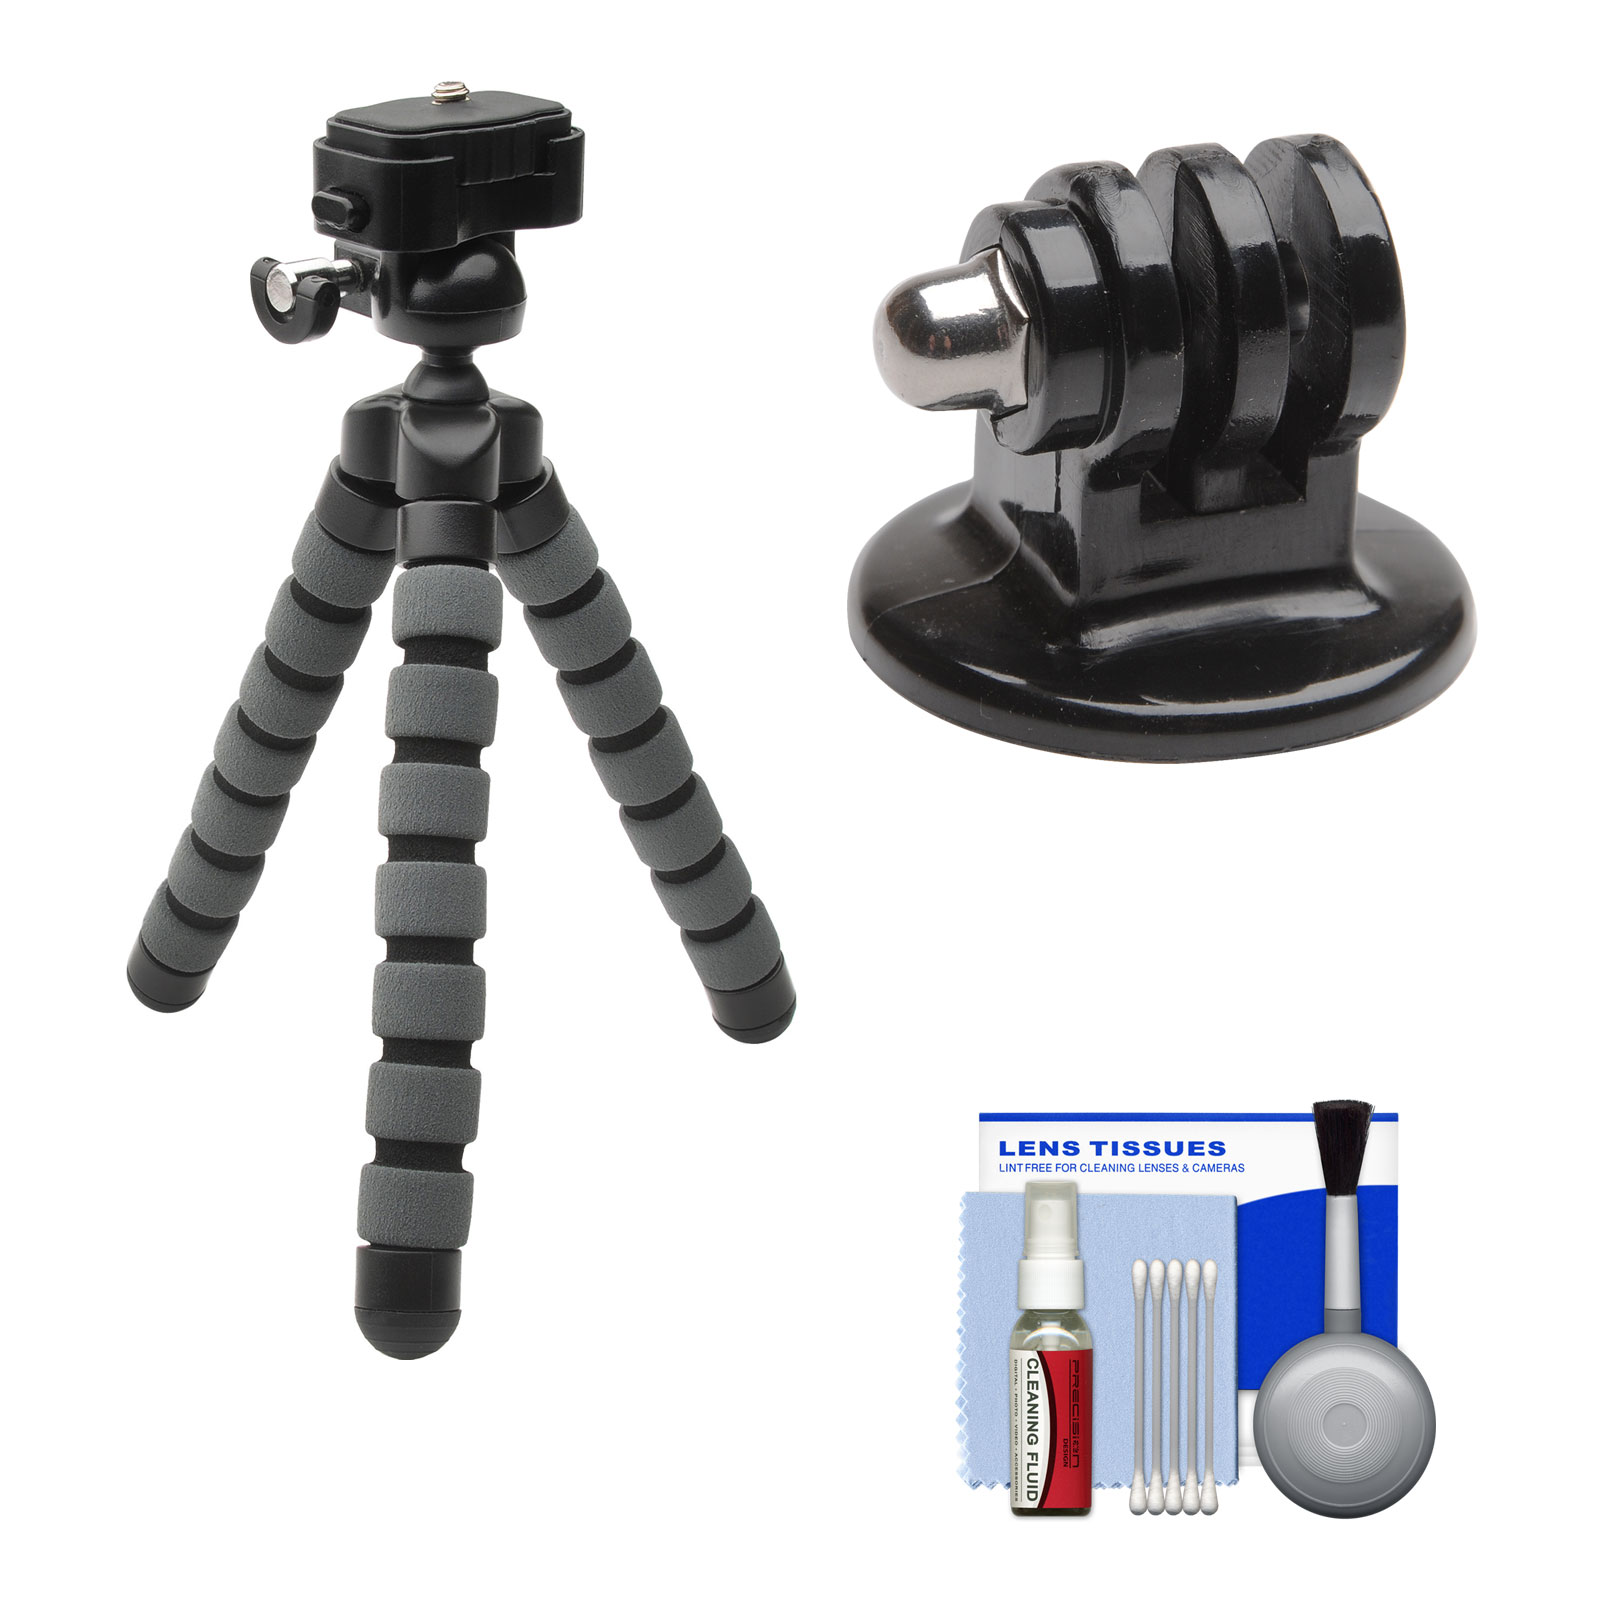 Precision Design PD-T14 Flexible Compact Camera Mini Tripod with Adapter + Cleaning Kit for Original HD HERO, HD HERO2, HERO3, HERO3+, HERO4 Cameras